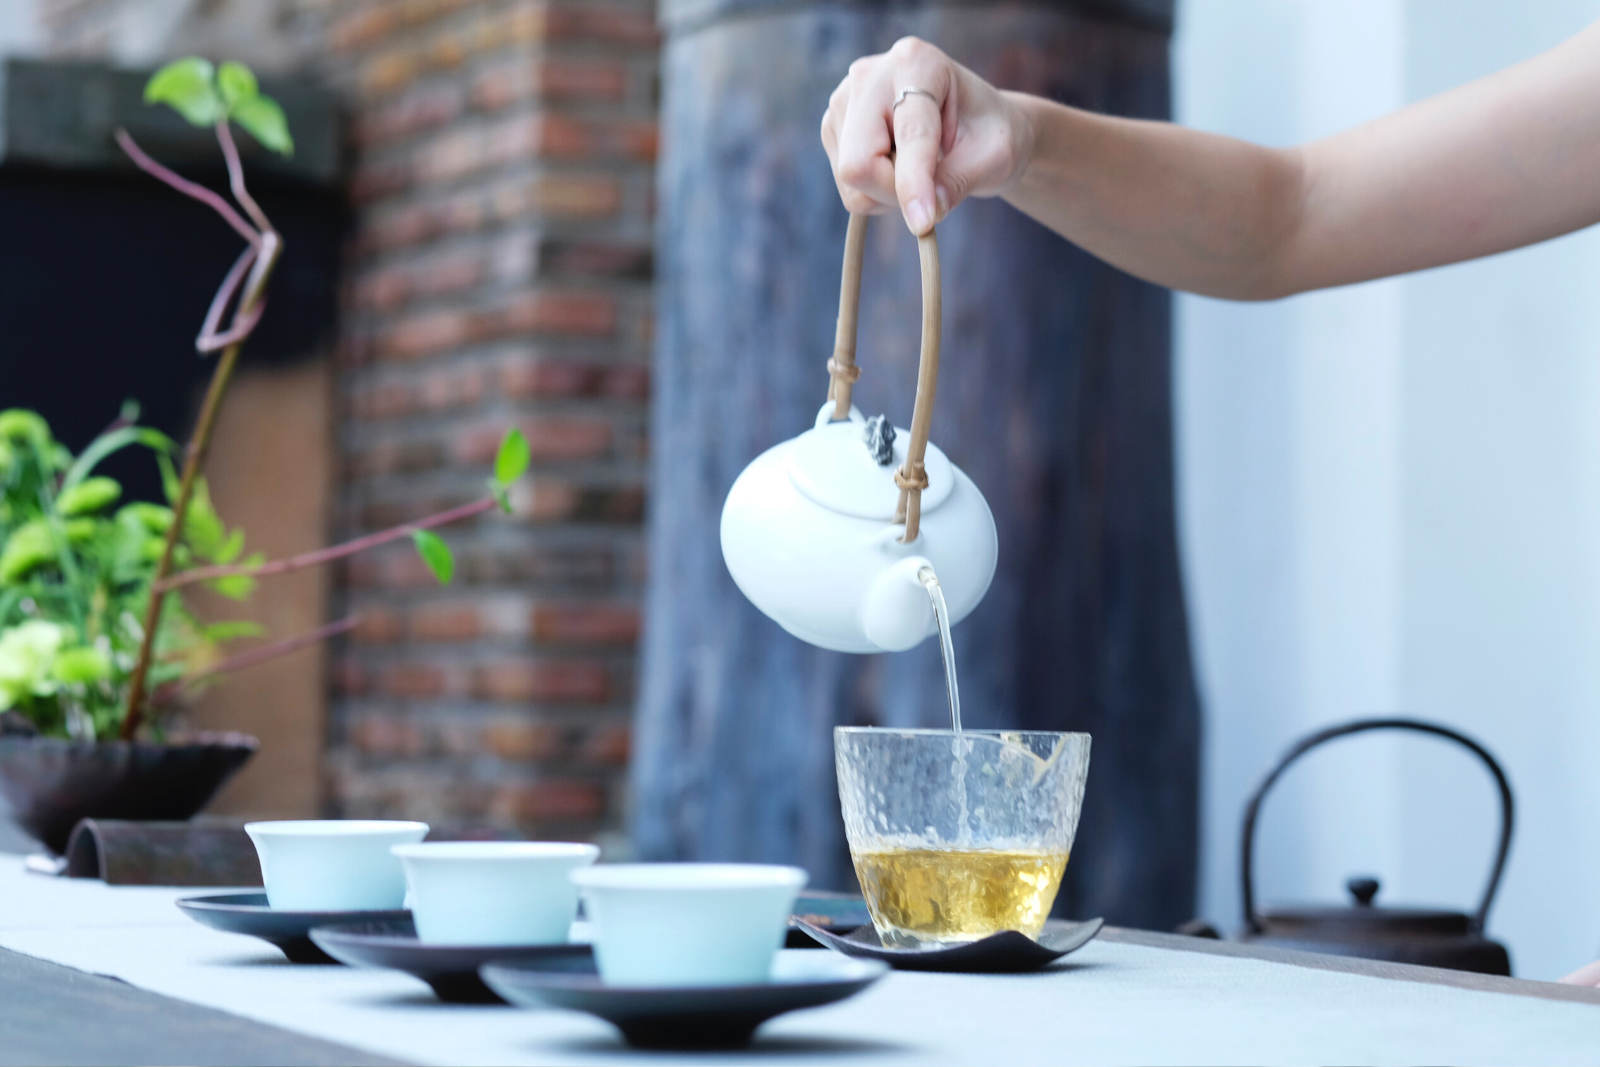 Pouring Tea on Tea Cup | Tea For Every Mood: Can Tea Affect Your State Of Mind?